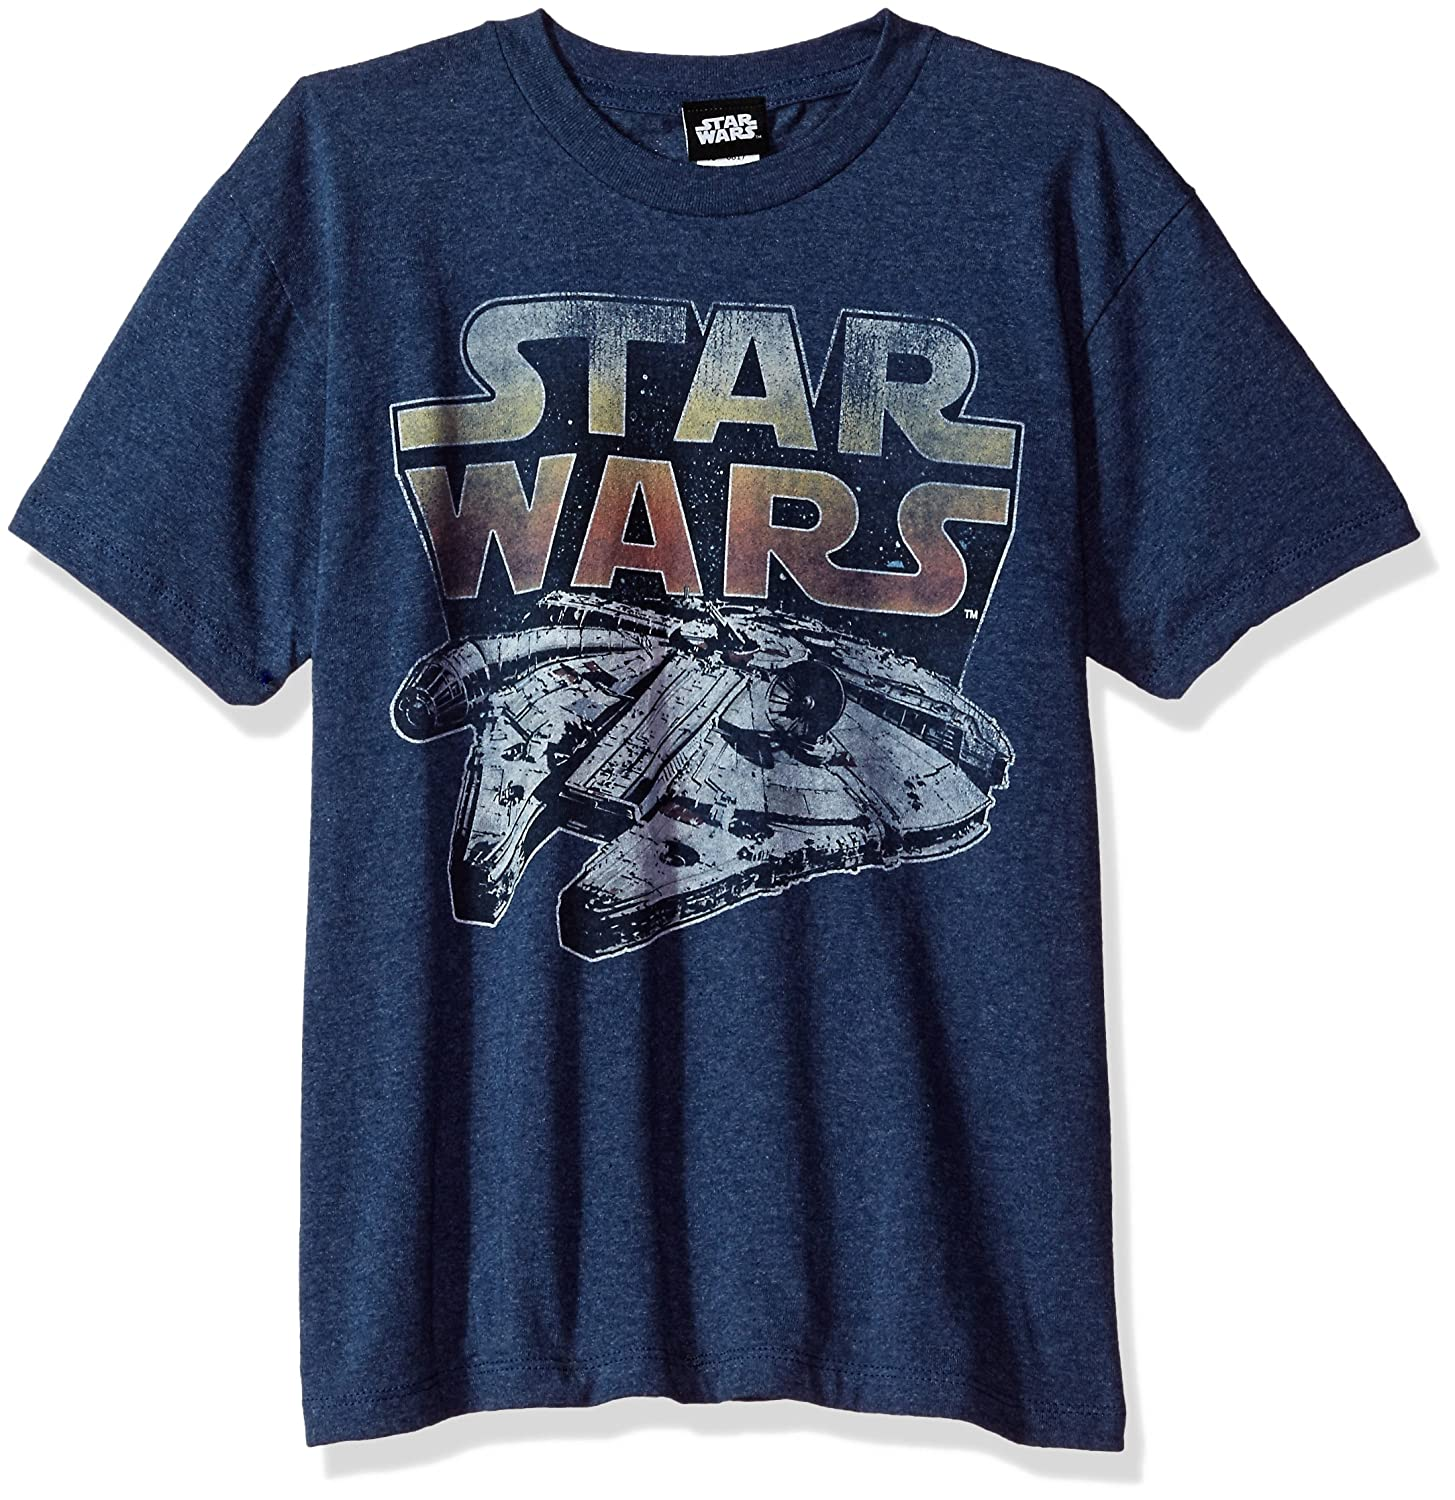 Boys Star Wars T Shirt Size 10-12 Large Glows in the Dark Millennium Falcon